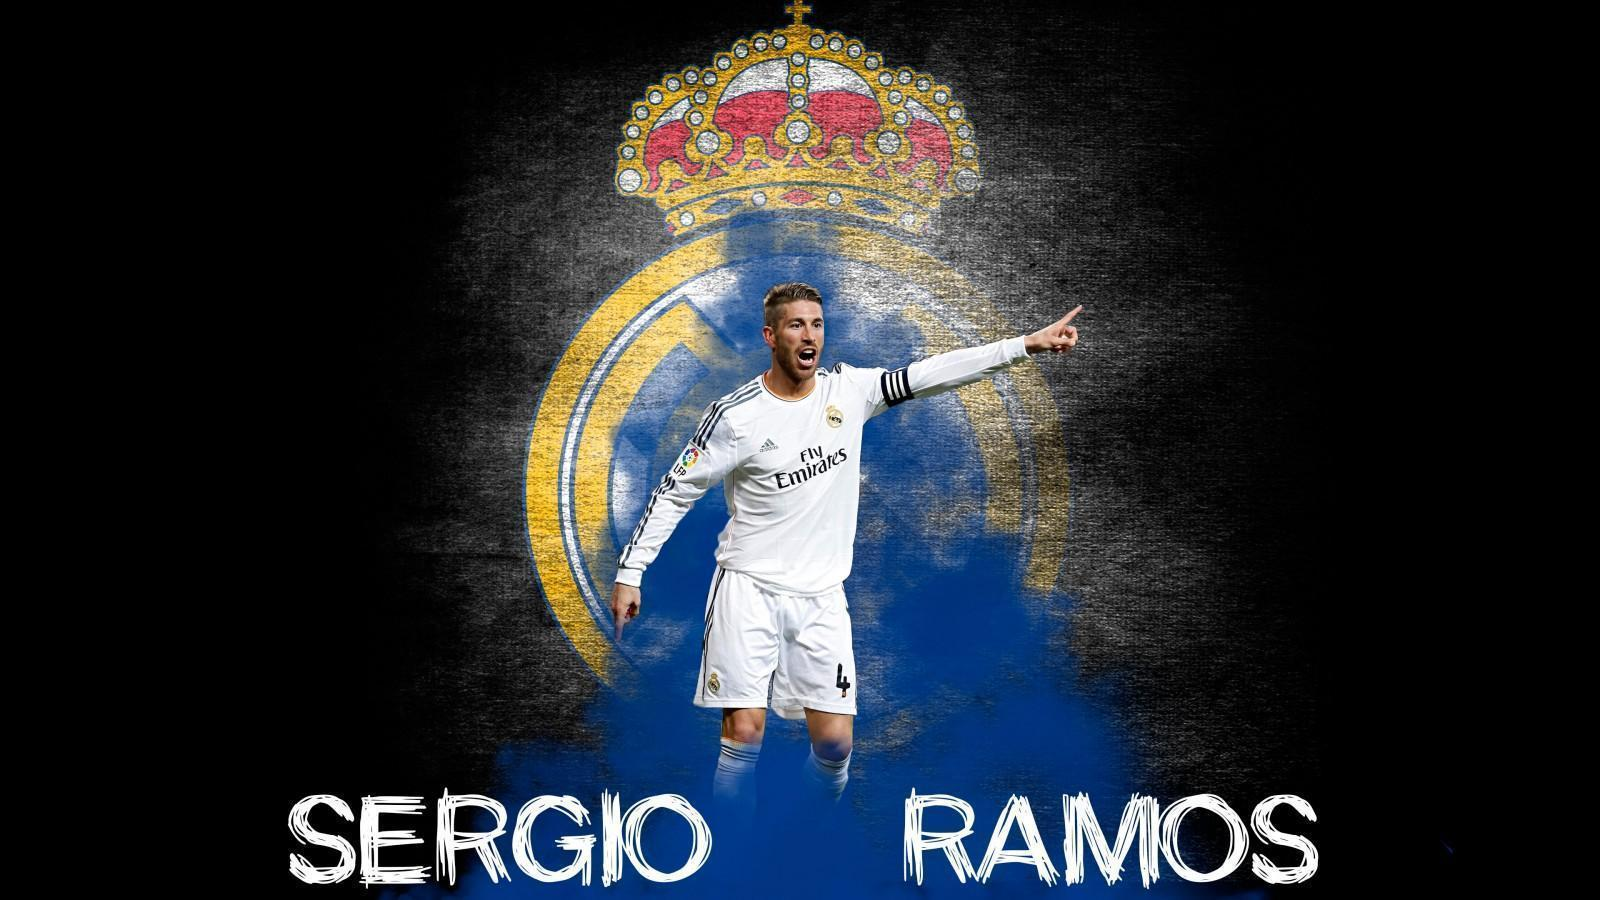 sergio ramos hd images - photo #32